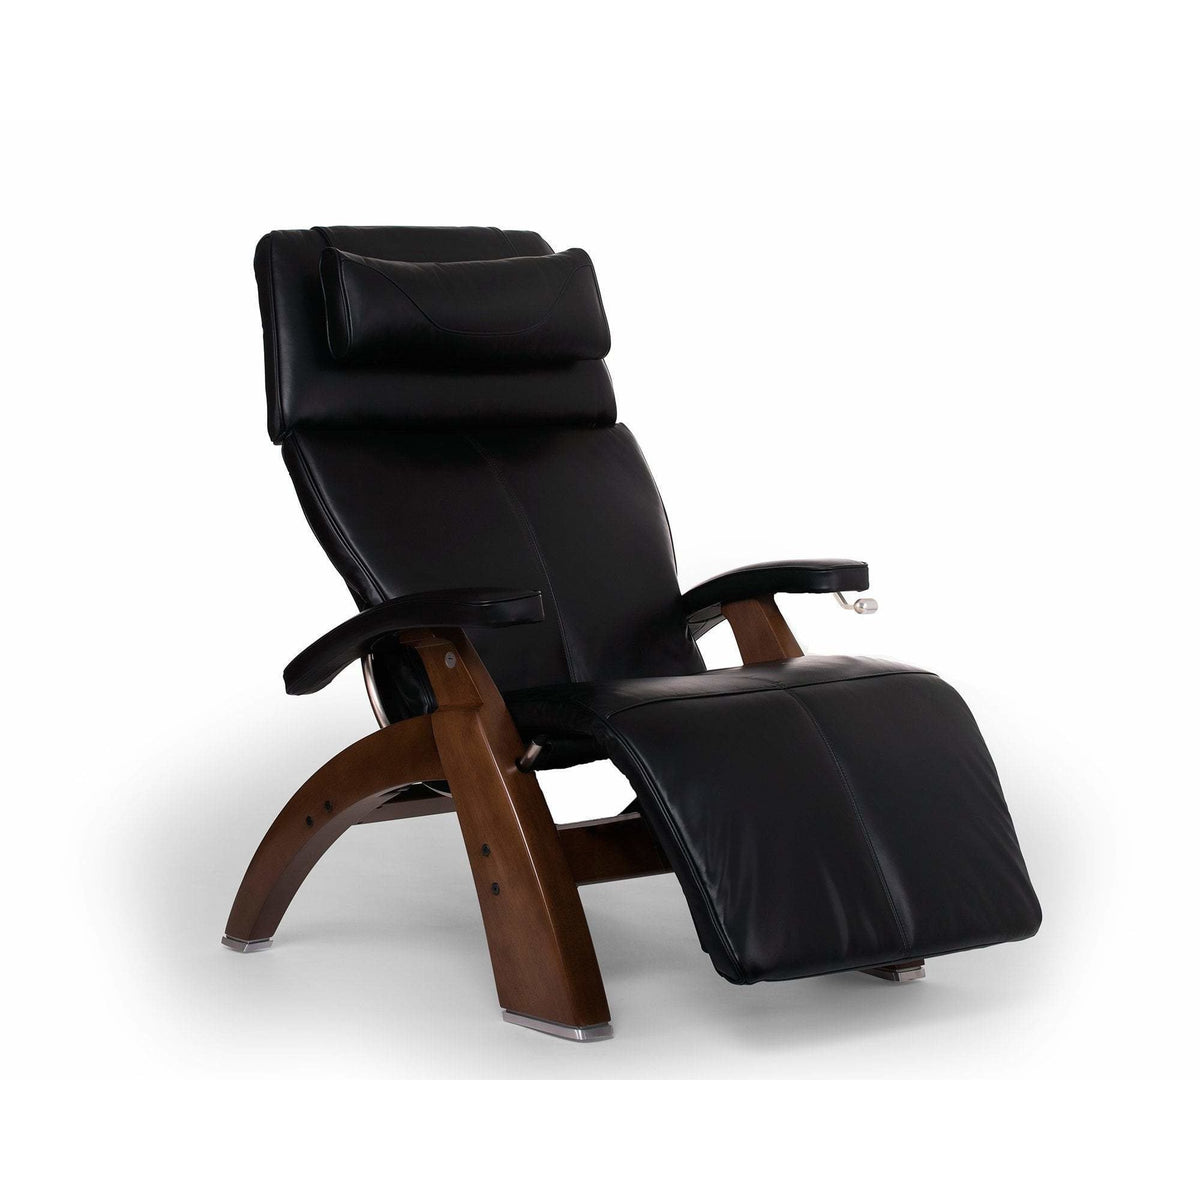 Relaxation & Reception Ivory / Dark Walnut Human Touch Perfect Chair Deluxe Zero Gravity Chair with Jade Heat Option